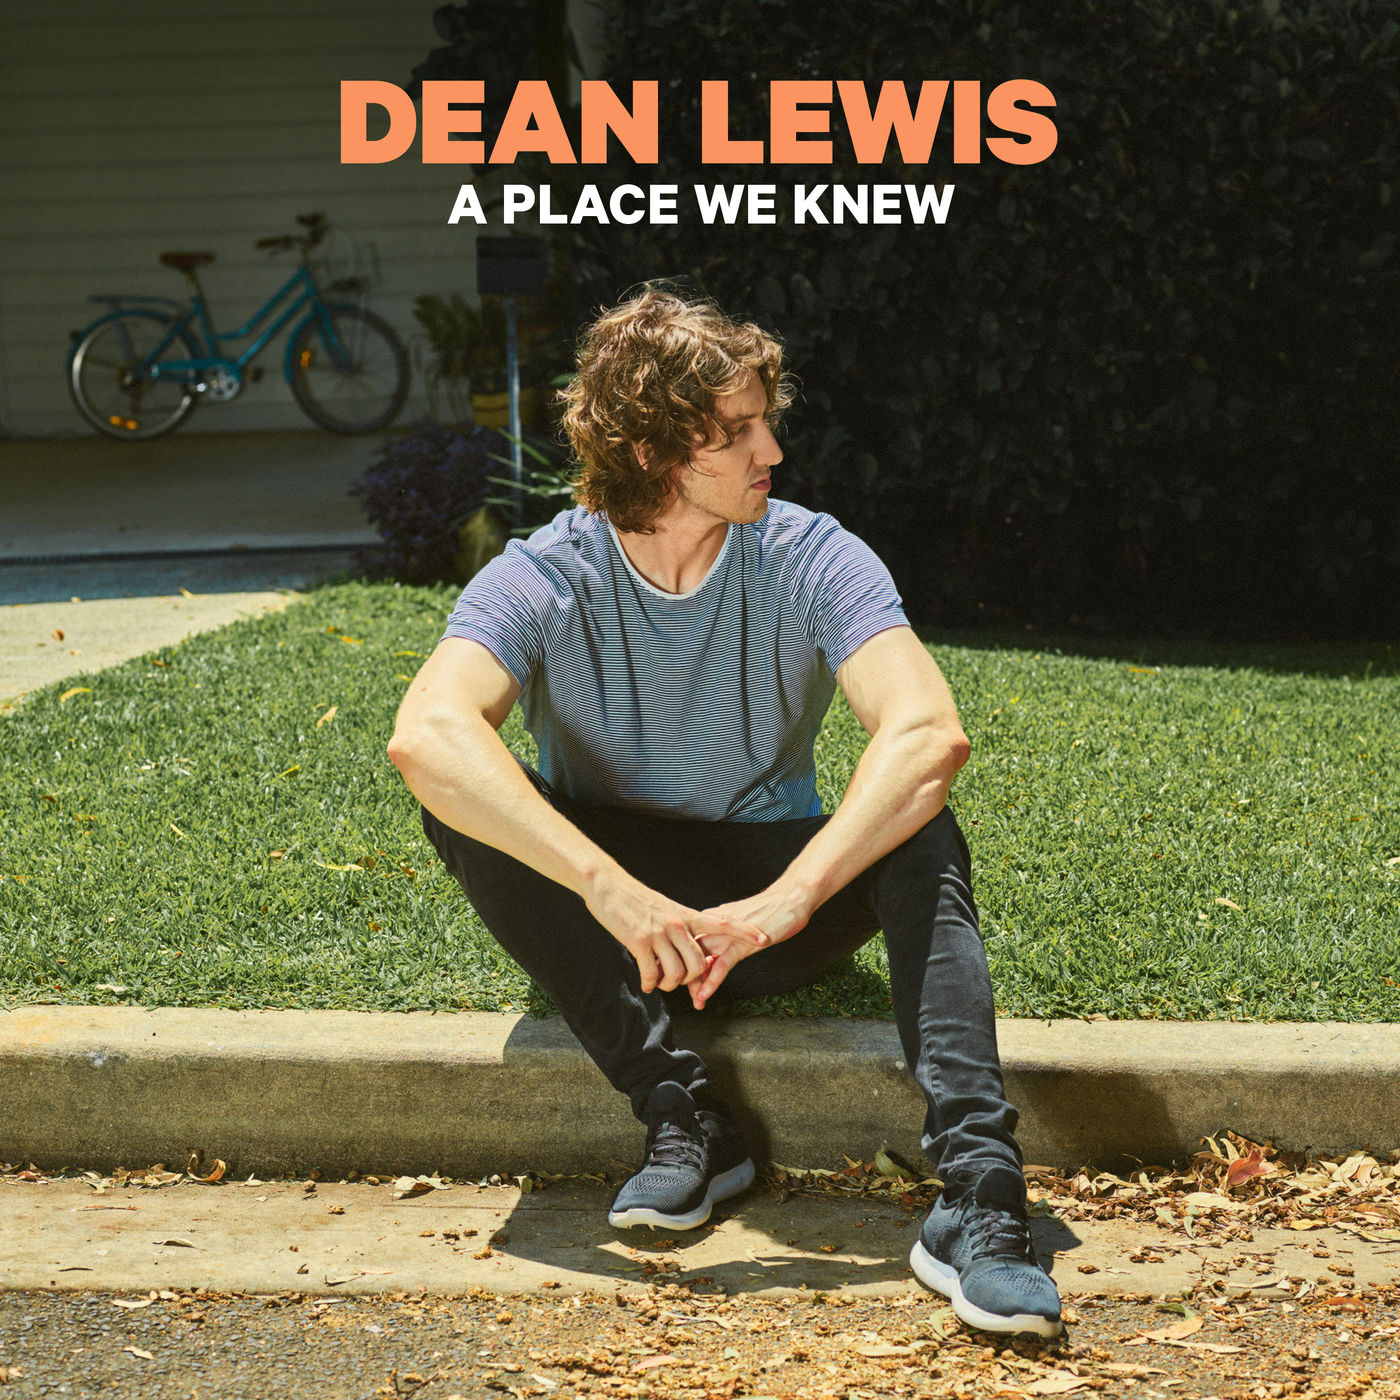 Dean Lewis - A Place We Knew (2019)